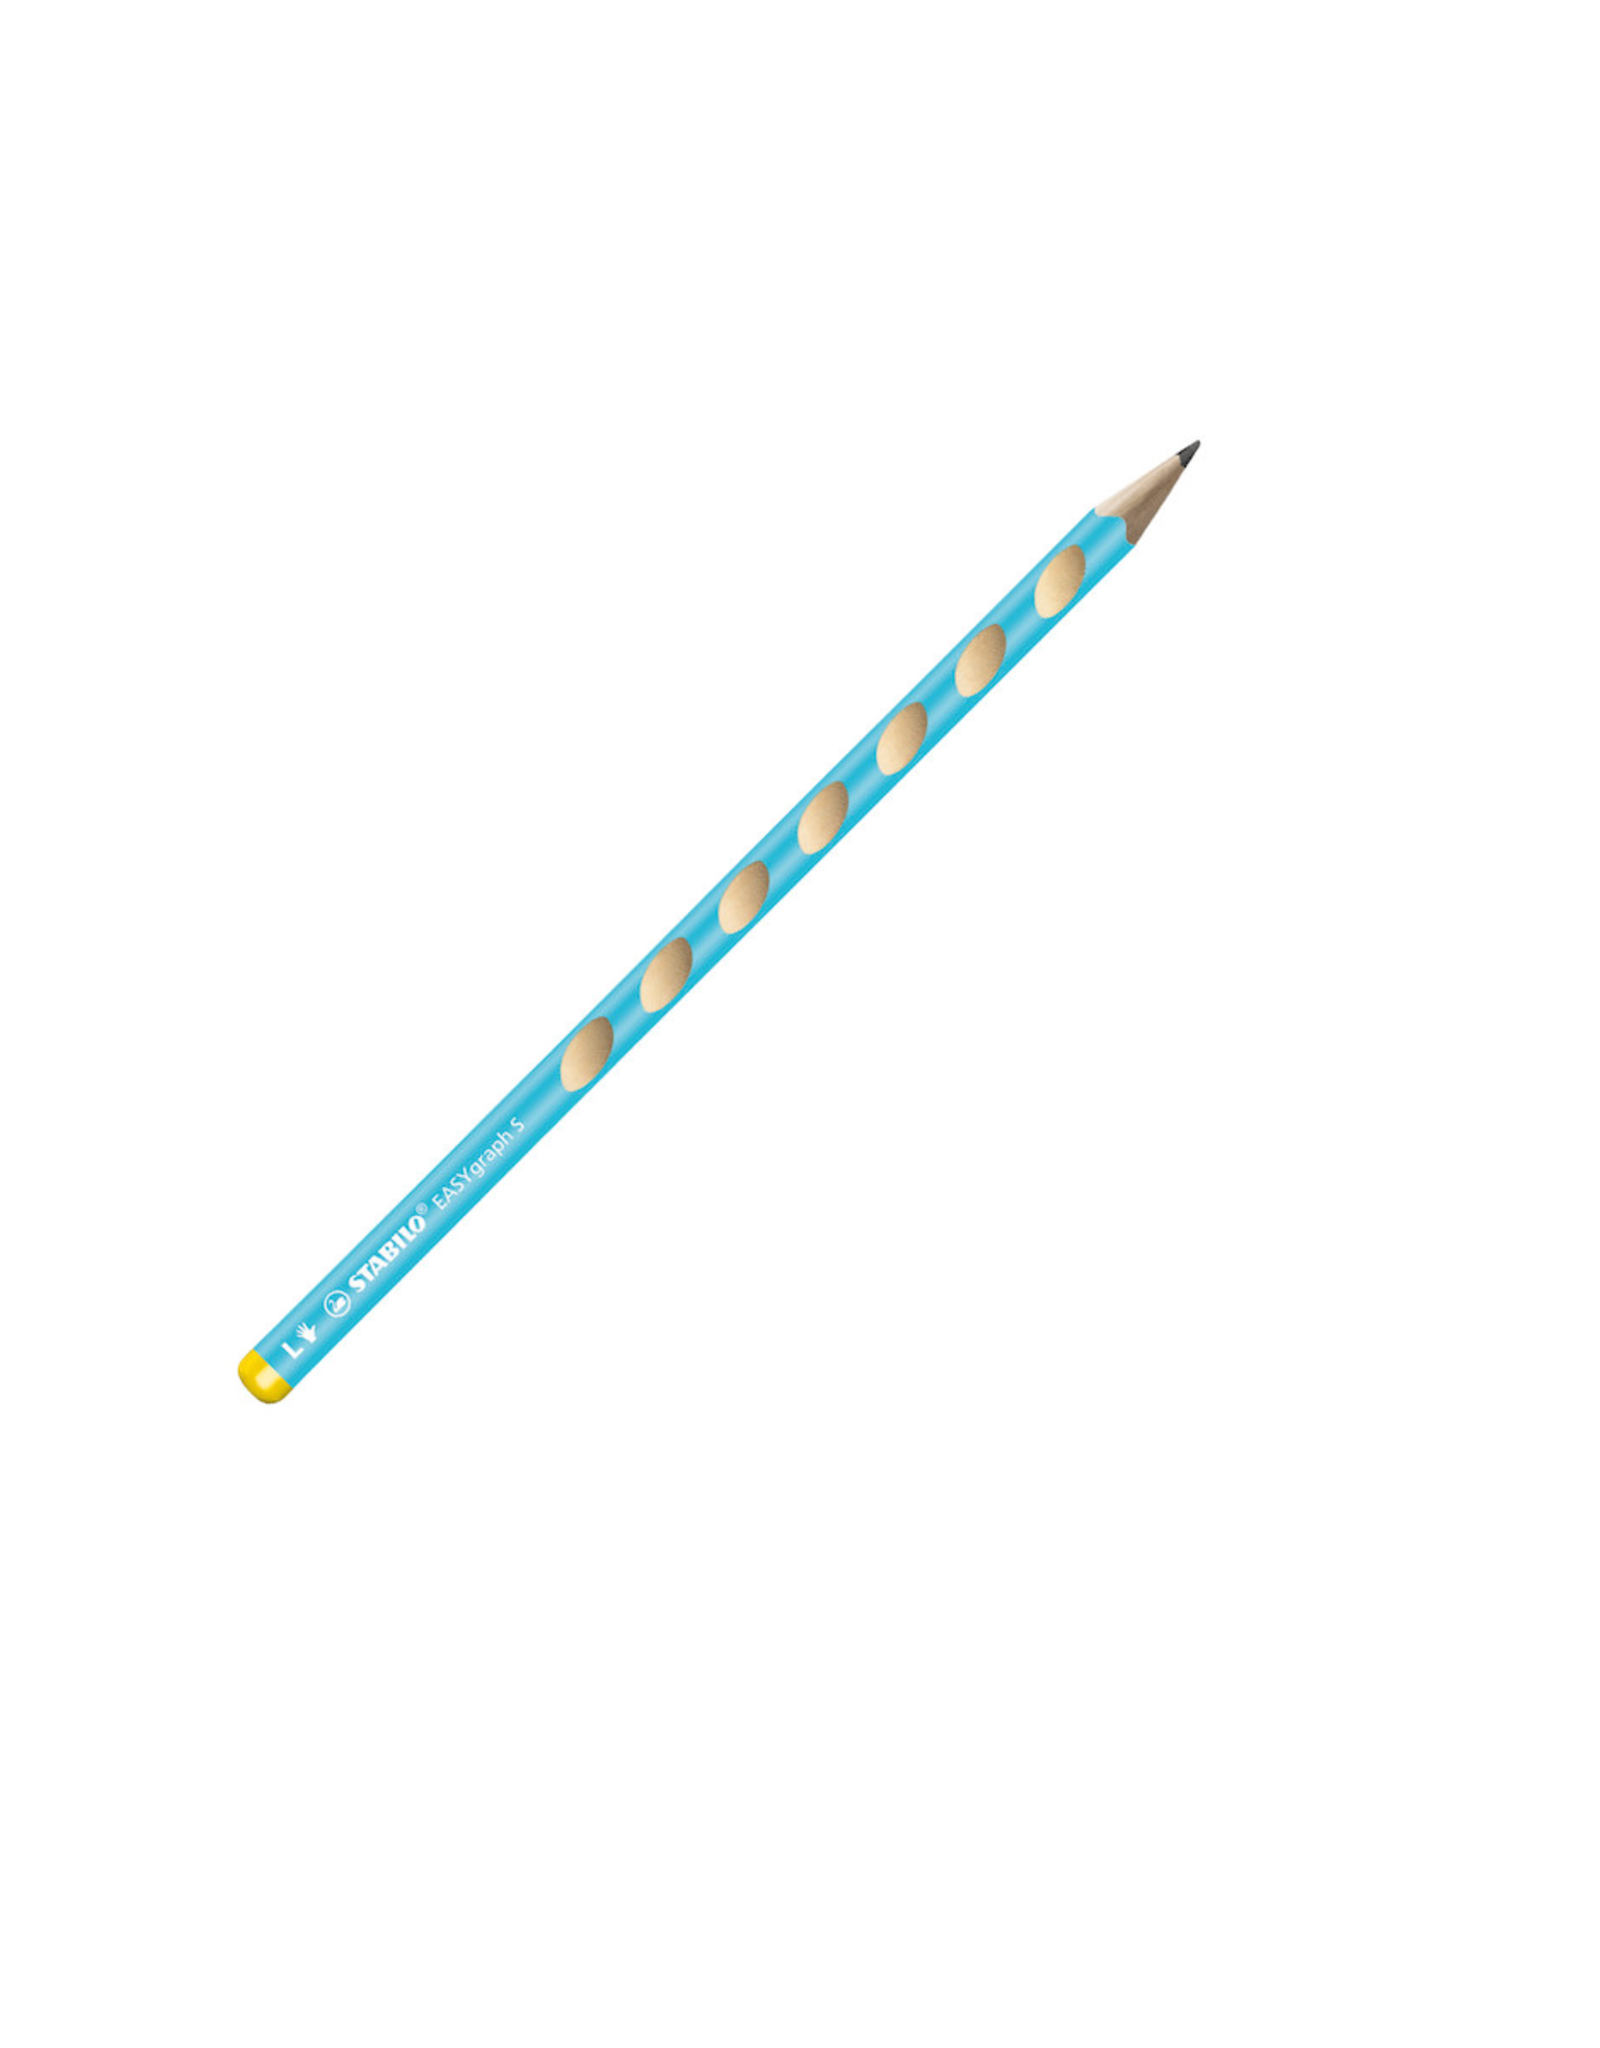 Stabilo Stabilo Easygraph Slim Left Blue Pencil (325/02-HB-6)